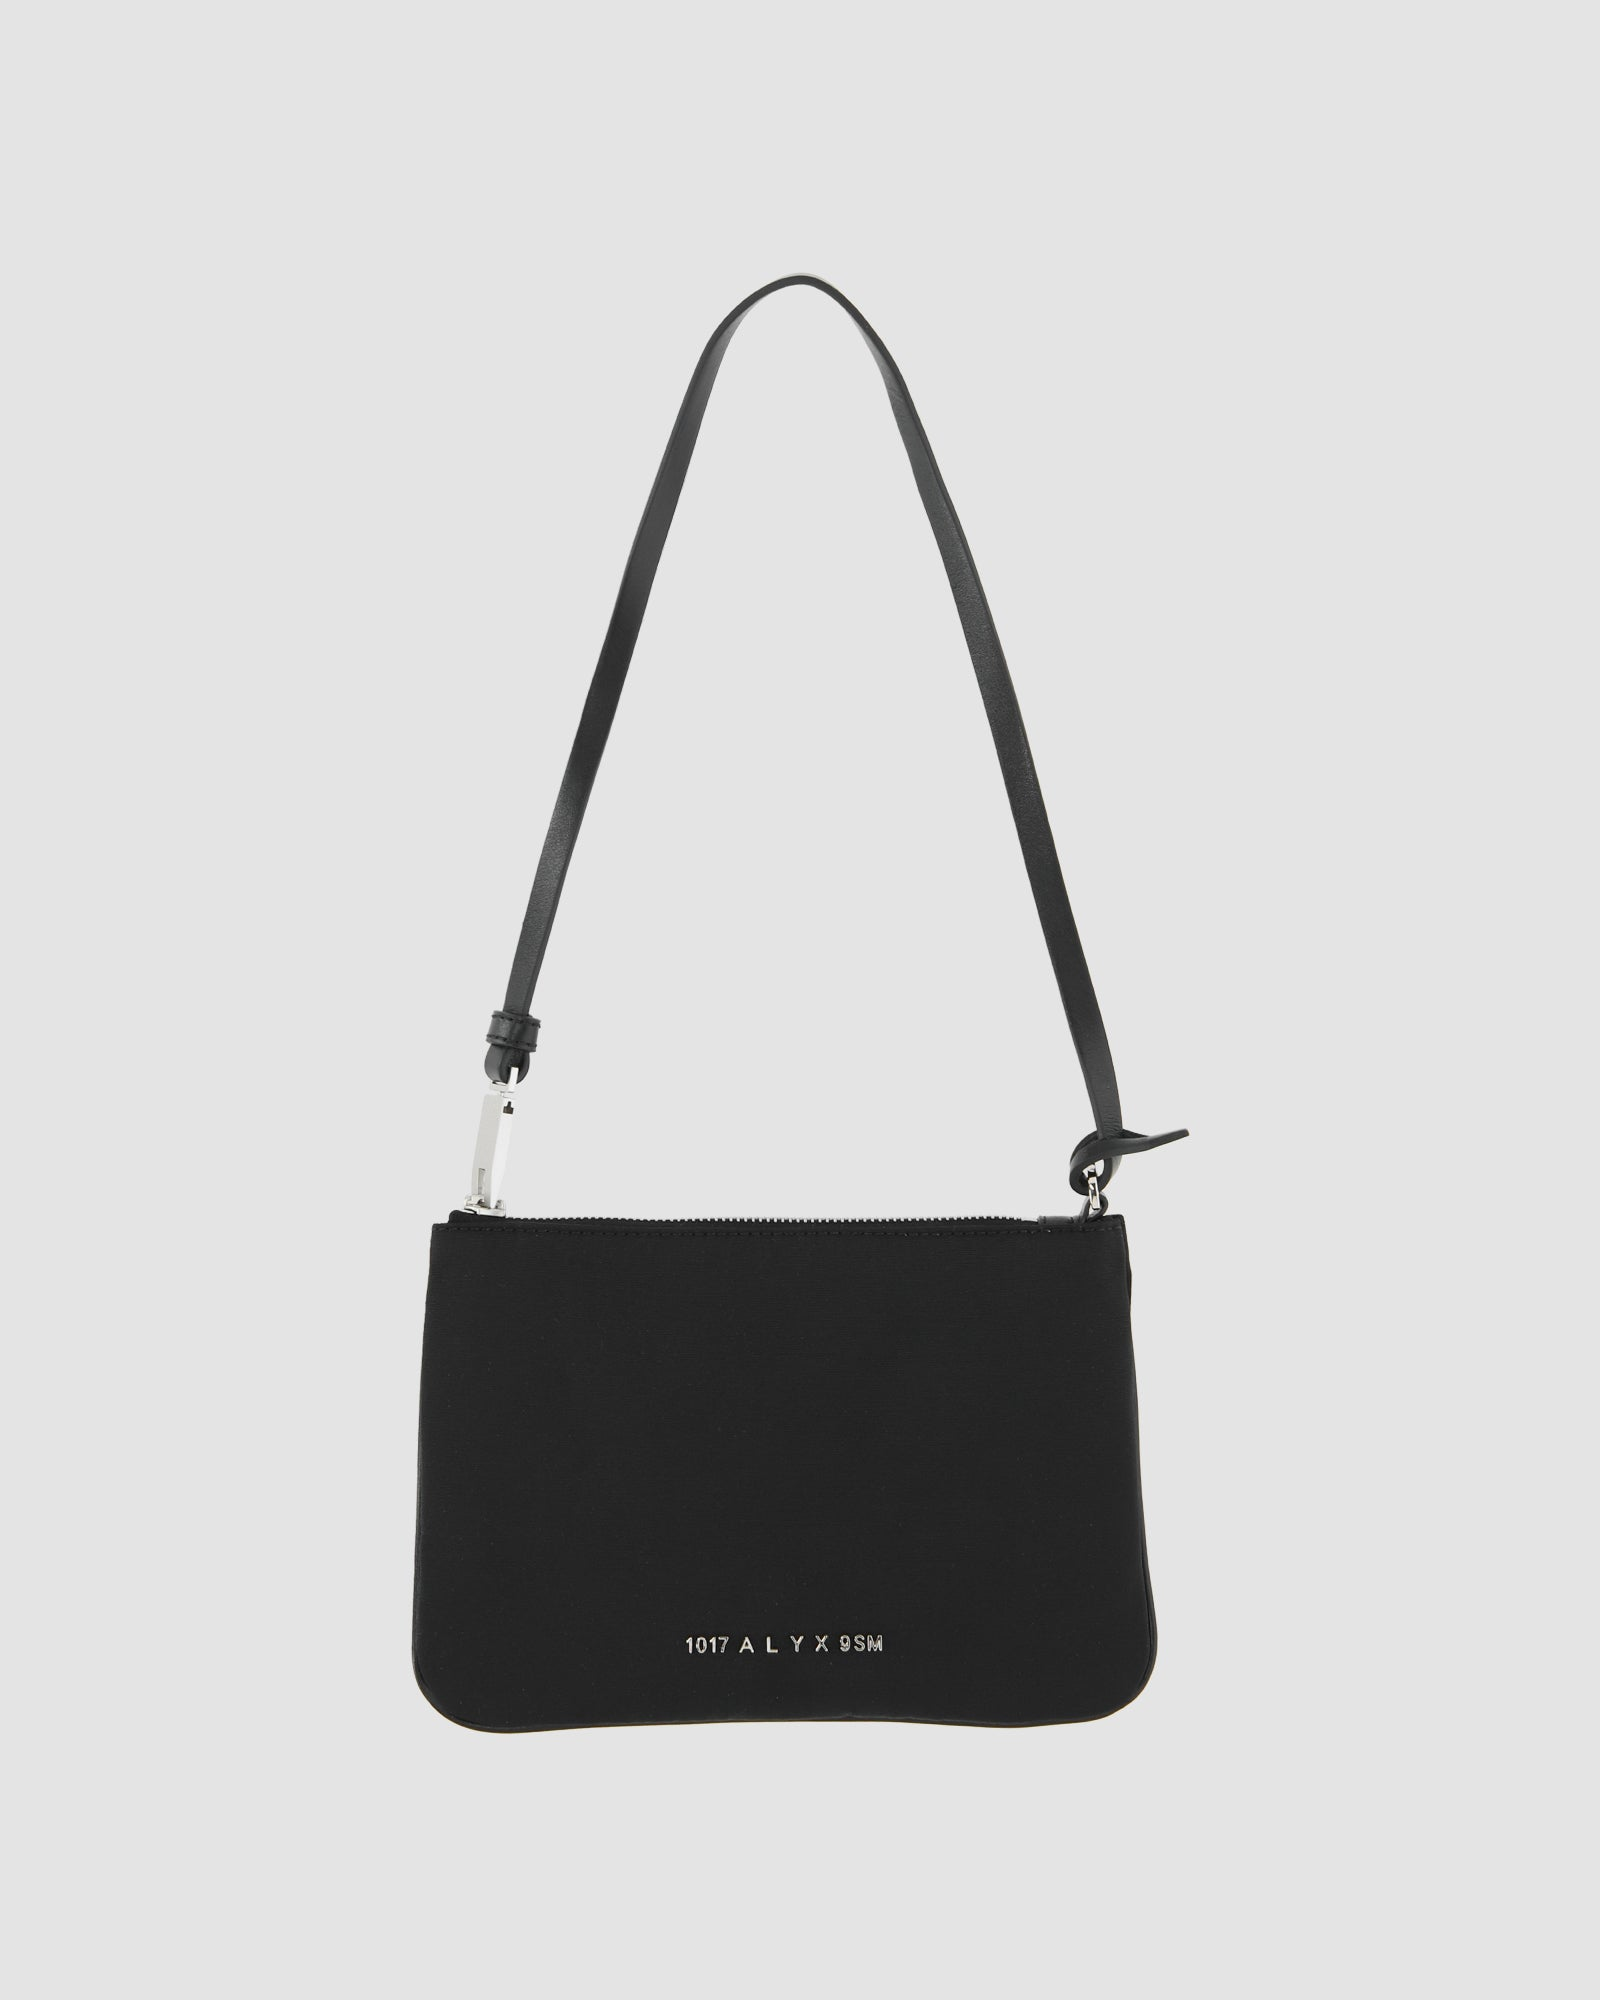 1017 ALYX 9SM | TAYLOR BAG | Bag | Accessories, bag, Bag Online, Bags, BLACK, CLUTCHES, Google Shopping, S20, S20EXSH, Woman, WOMEN